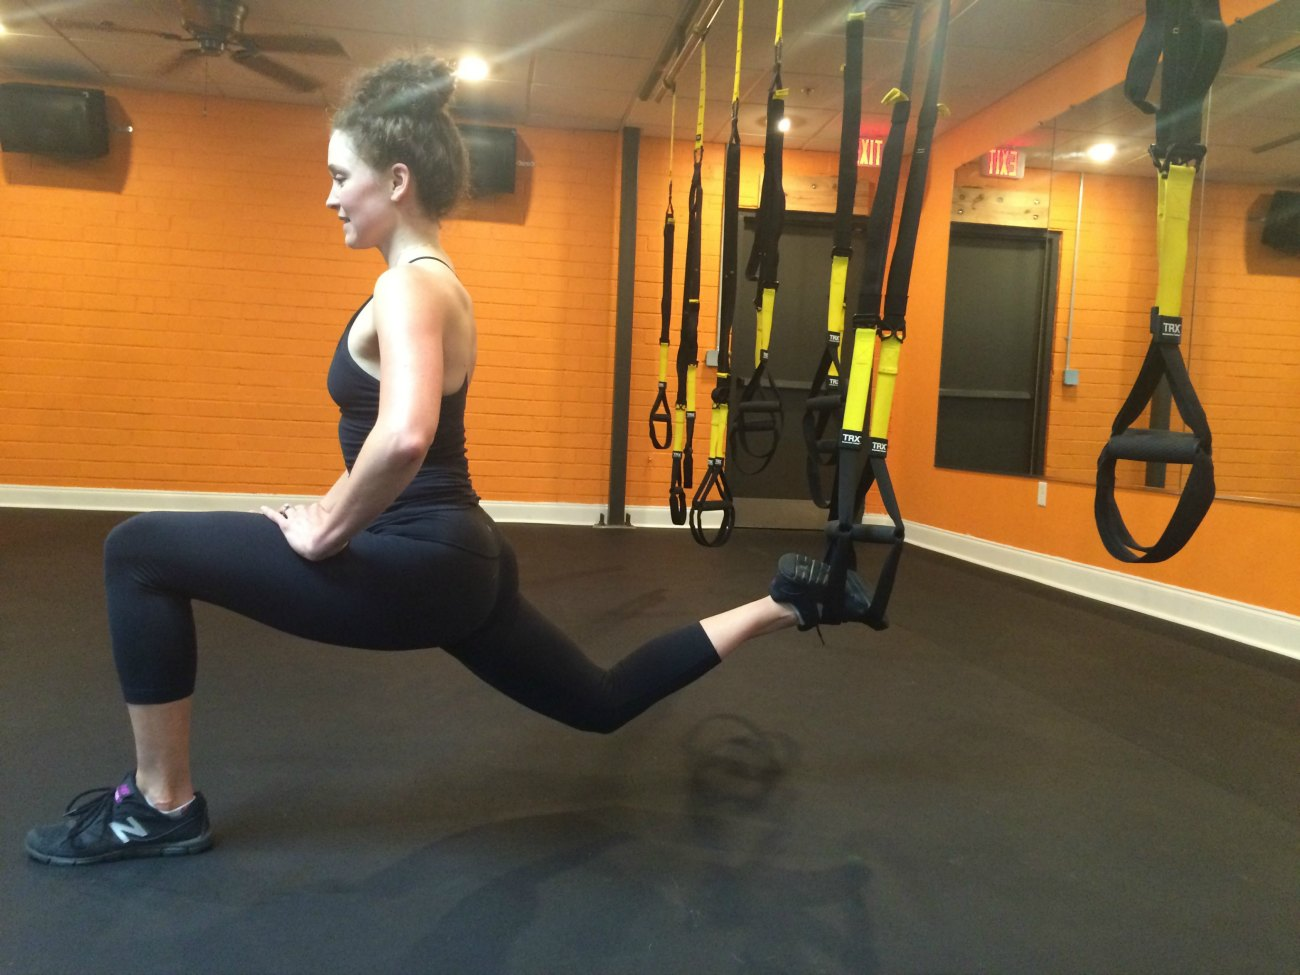 So you want to work out like a Navy SEAL? TRX suspension training is for you